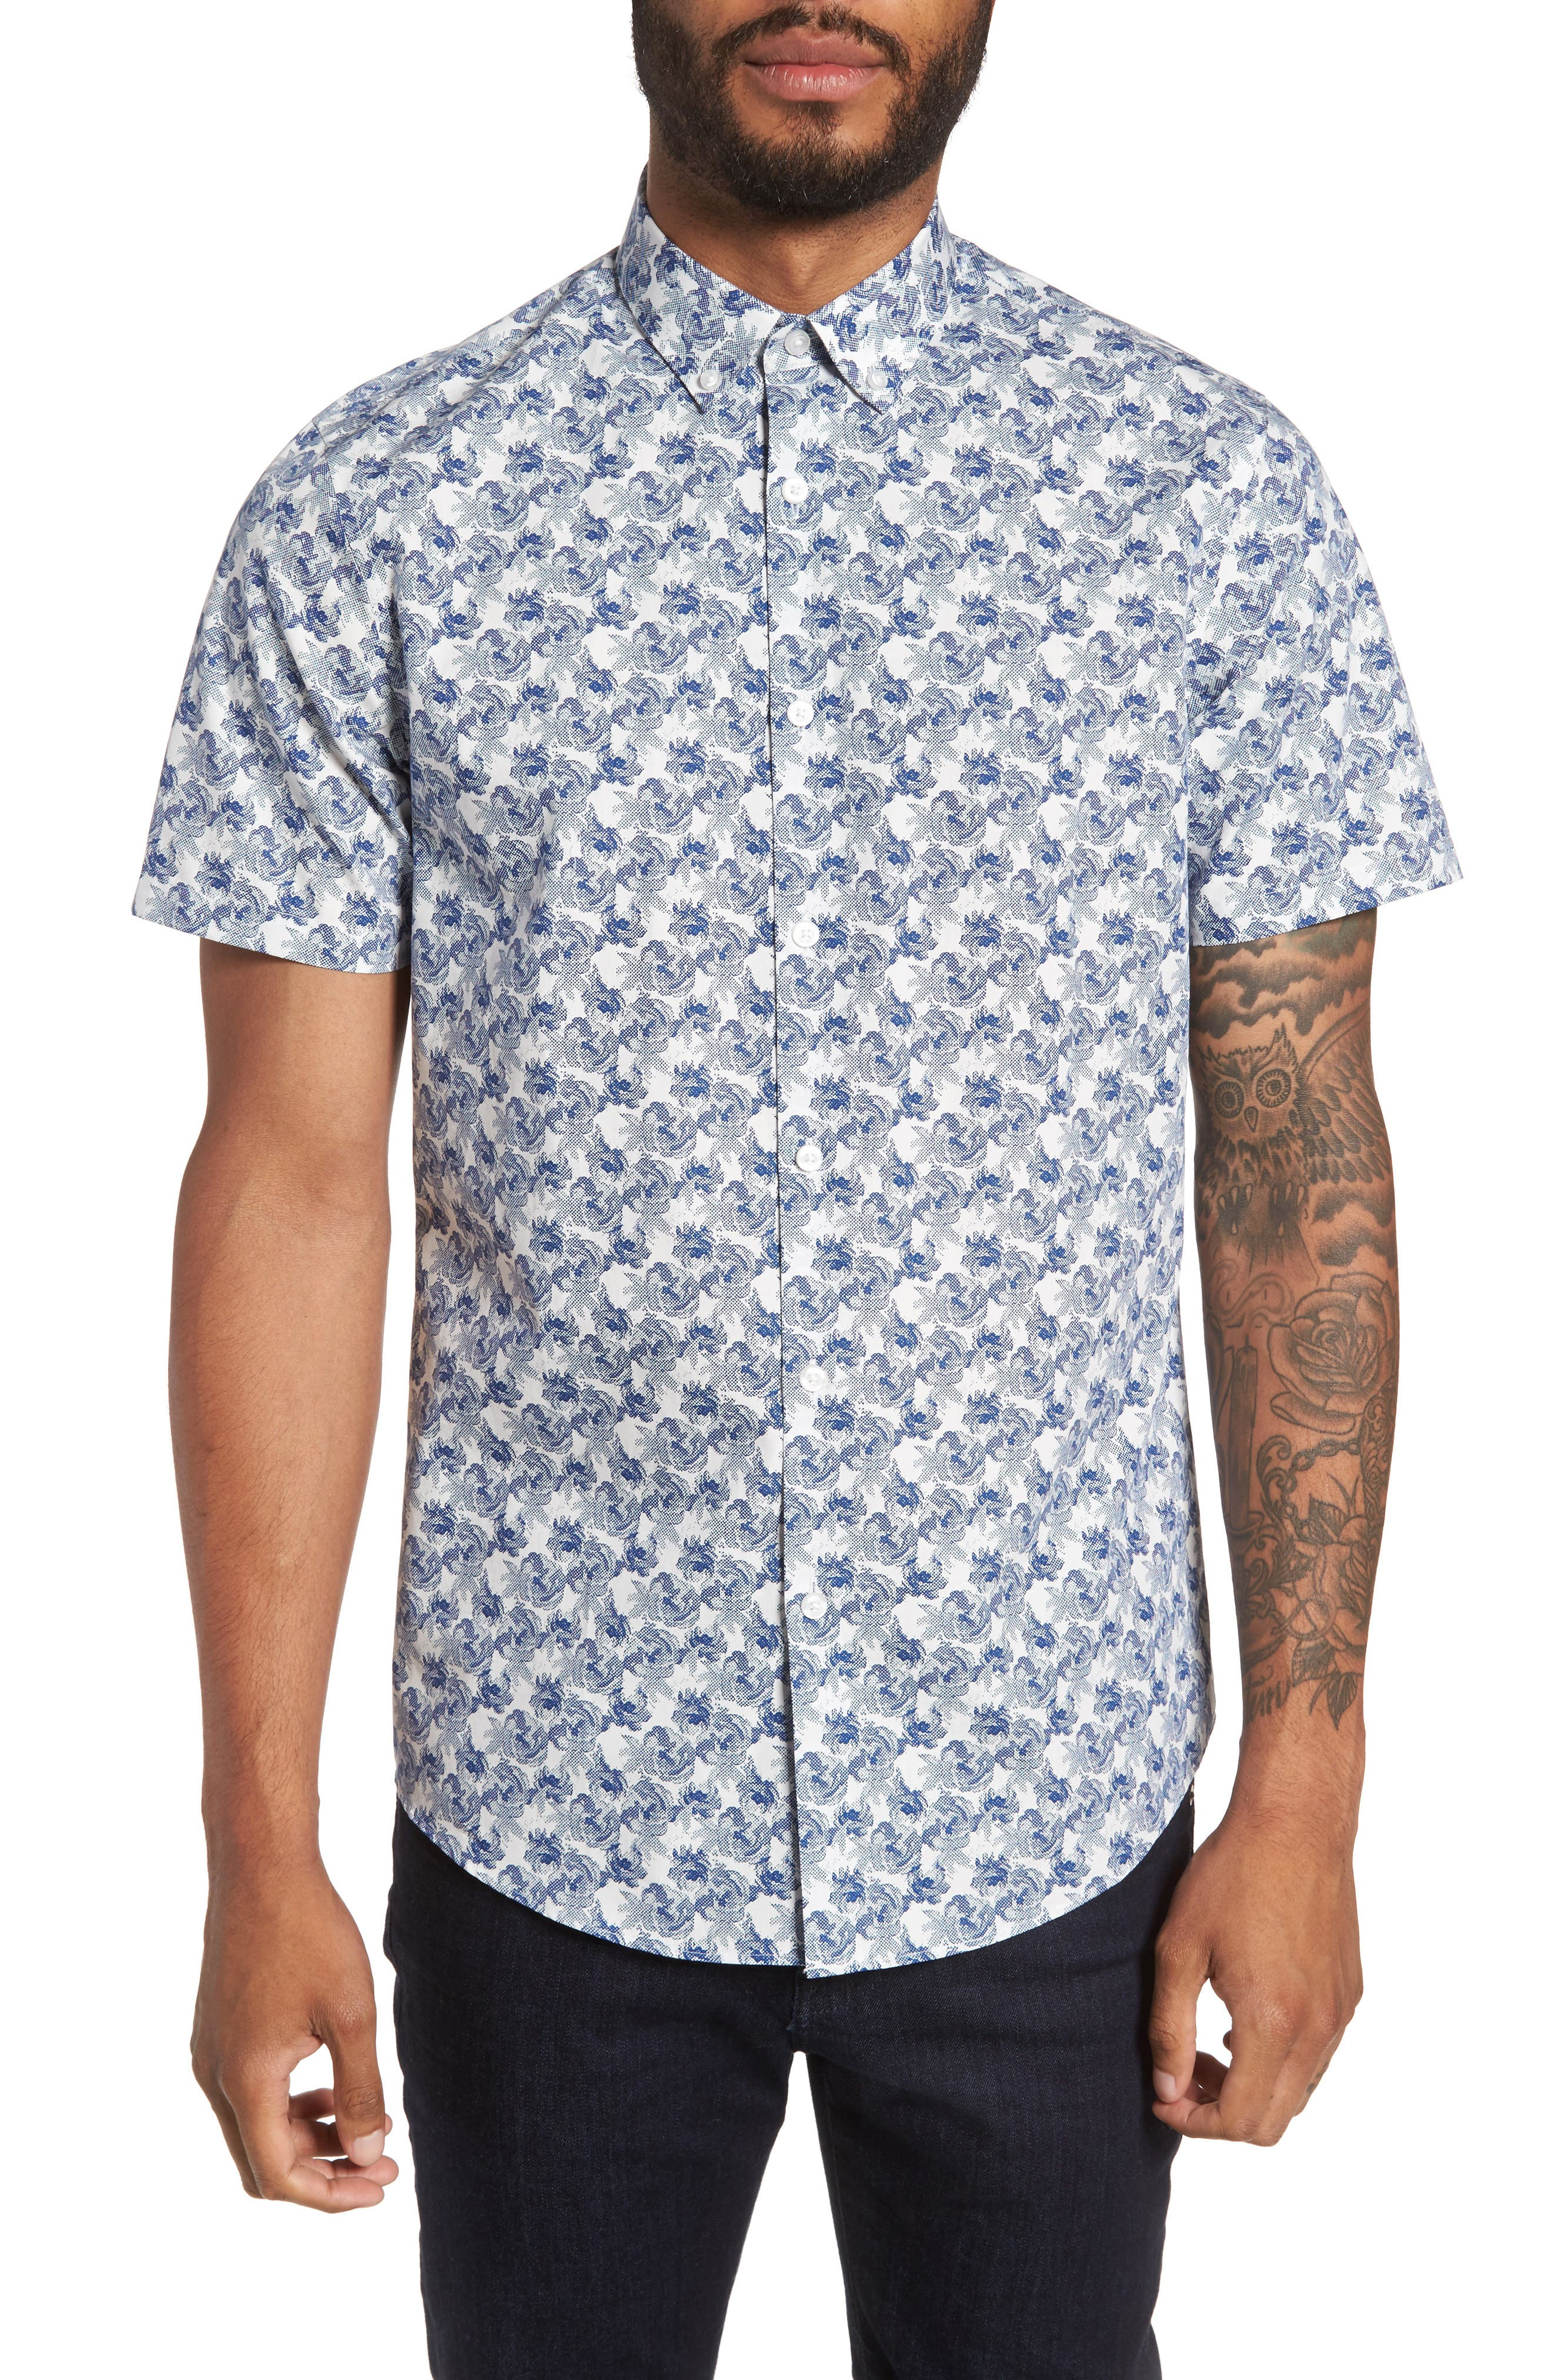 Casual Button-Down Shirts Calibrate Clothing, Shoes & Accessories ...